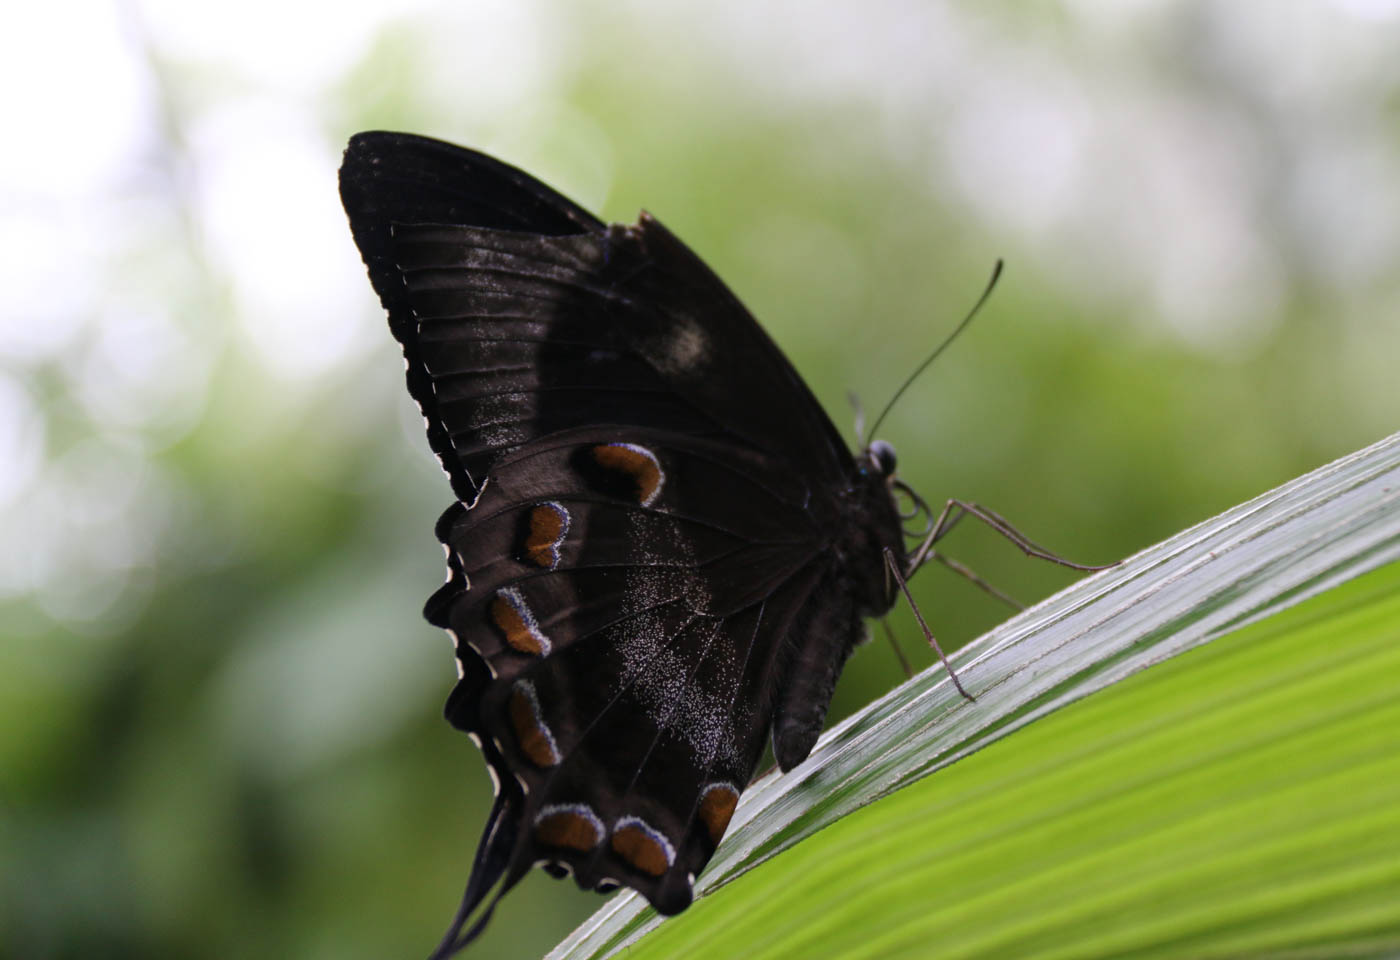 Black butterfly taken with Canon EOS 70D DSLR camera